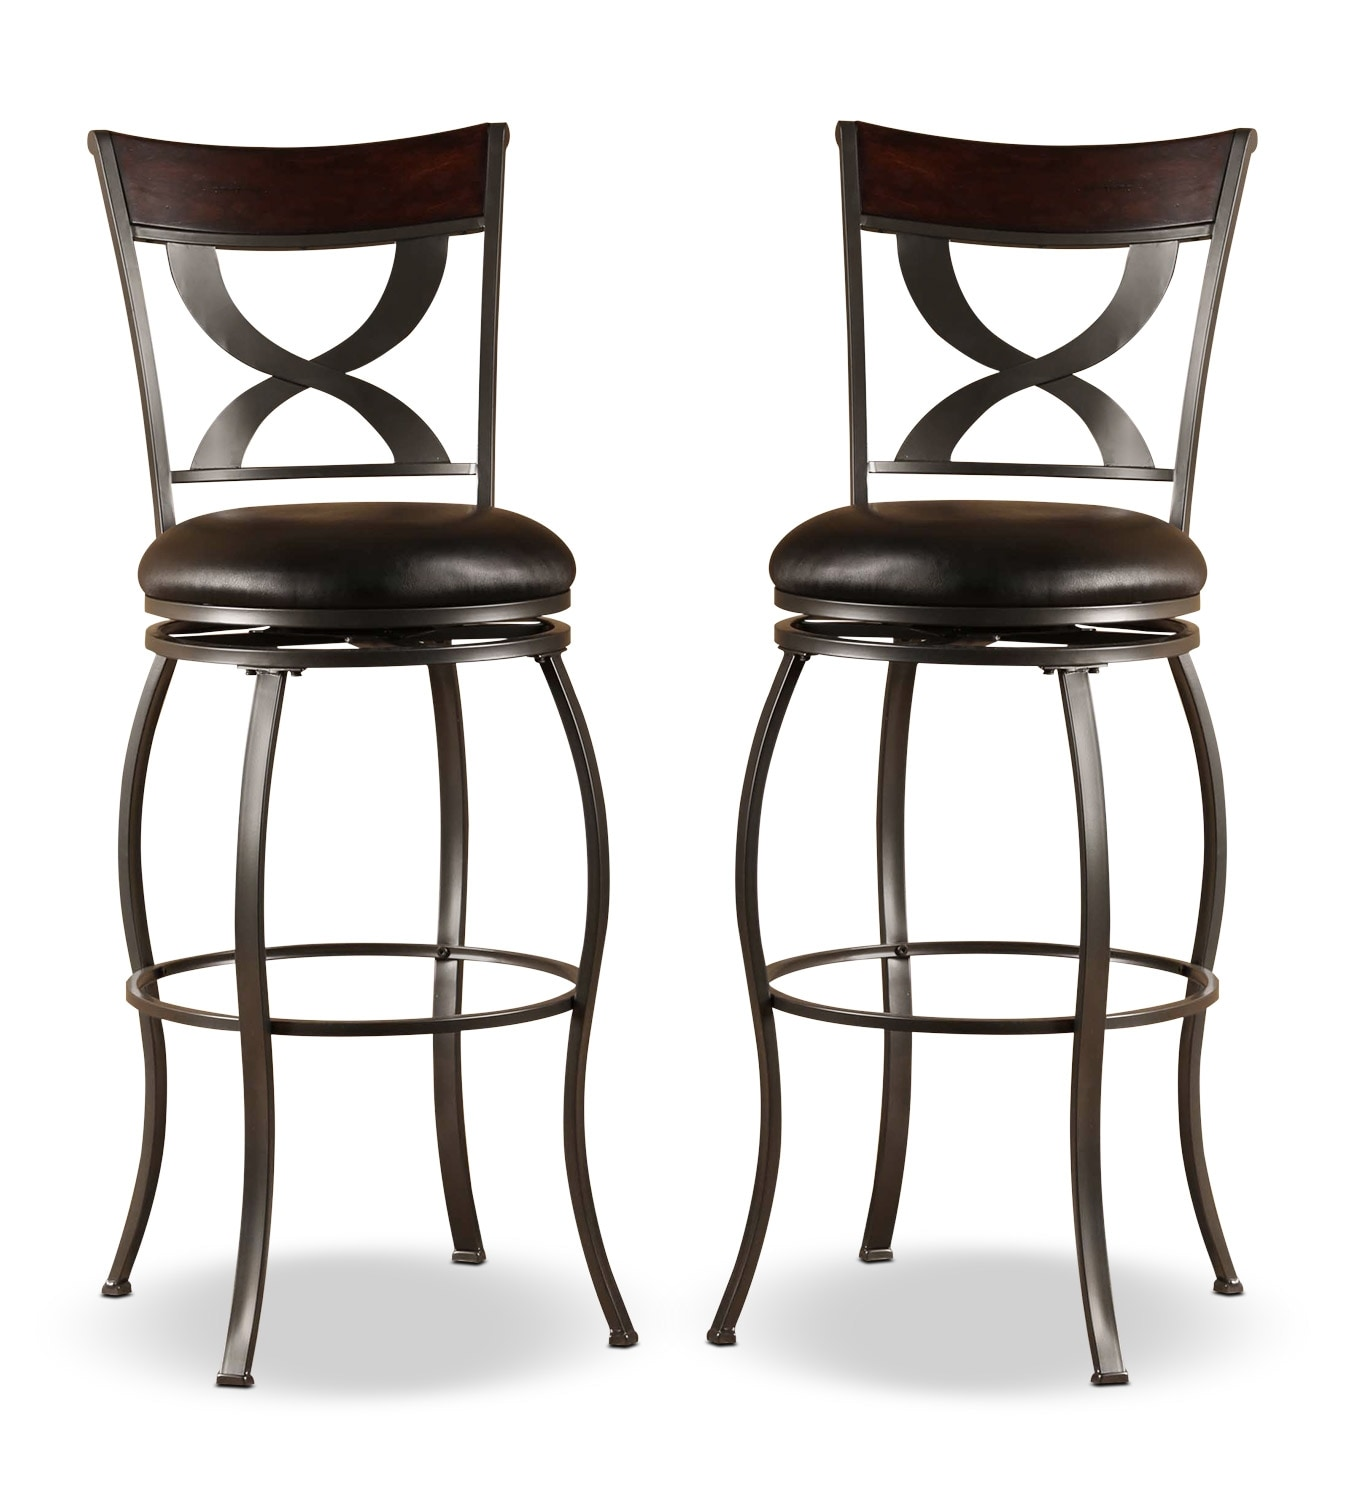 Dining Room Furniture - Stockport Counter-Height Swivel Stool – Set of 2